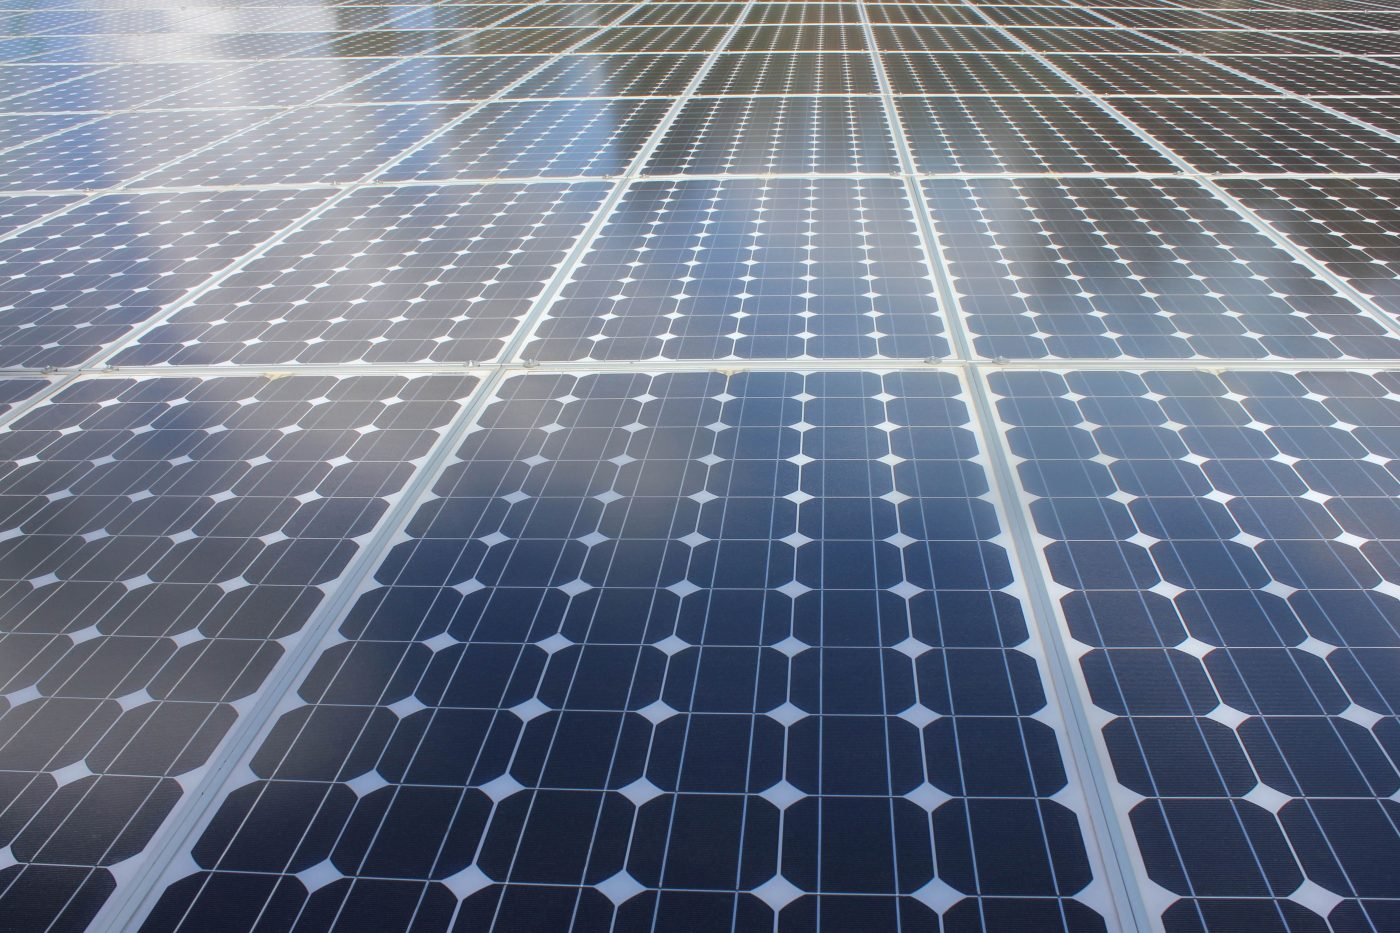 Solar Panels Reflecting the Sky, by Debbie Mous, brought to you by WindermereSun.com